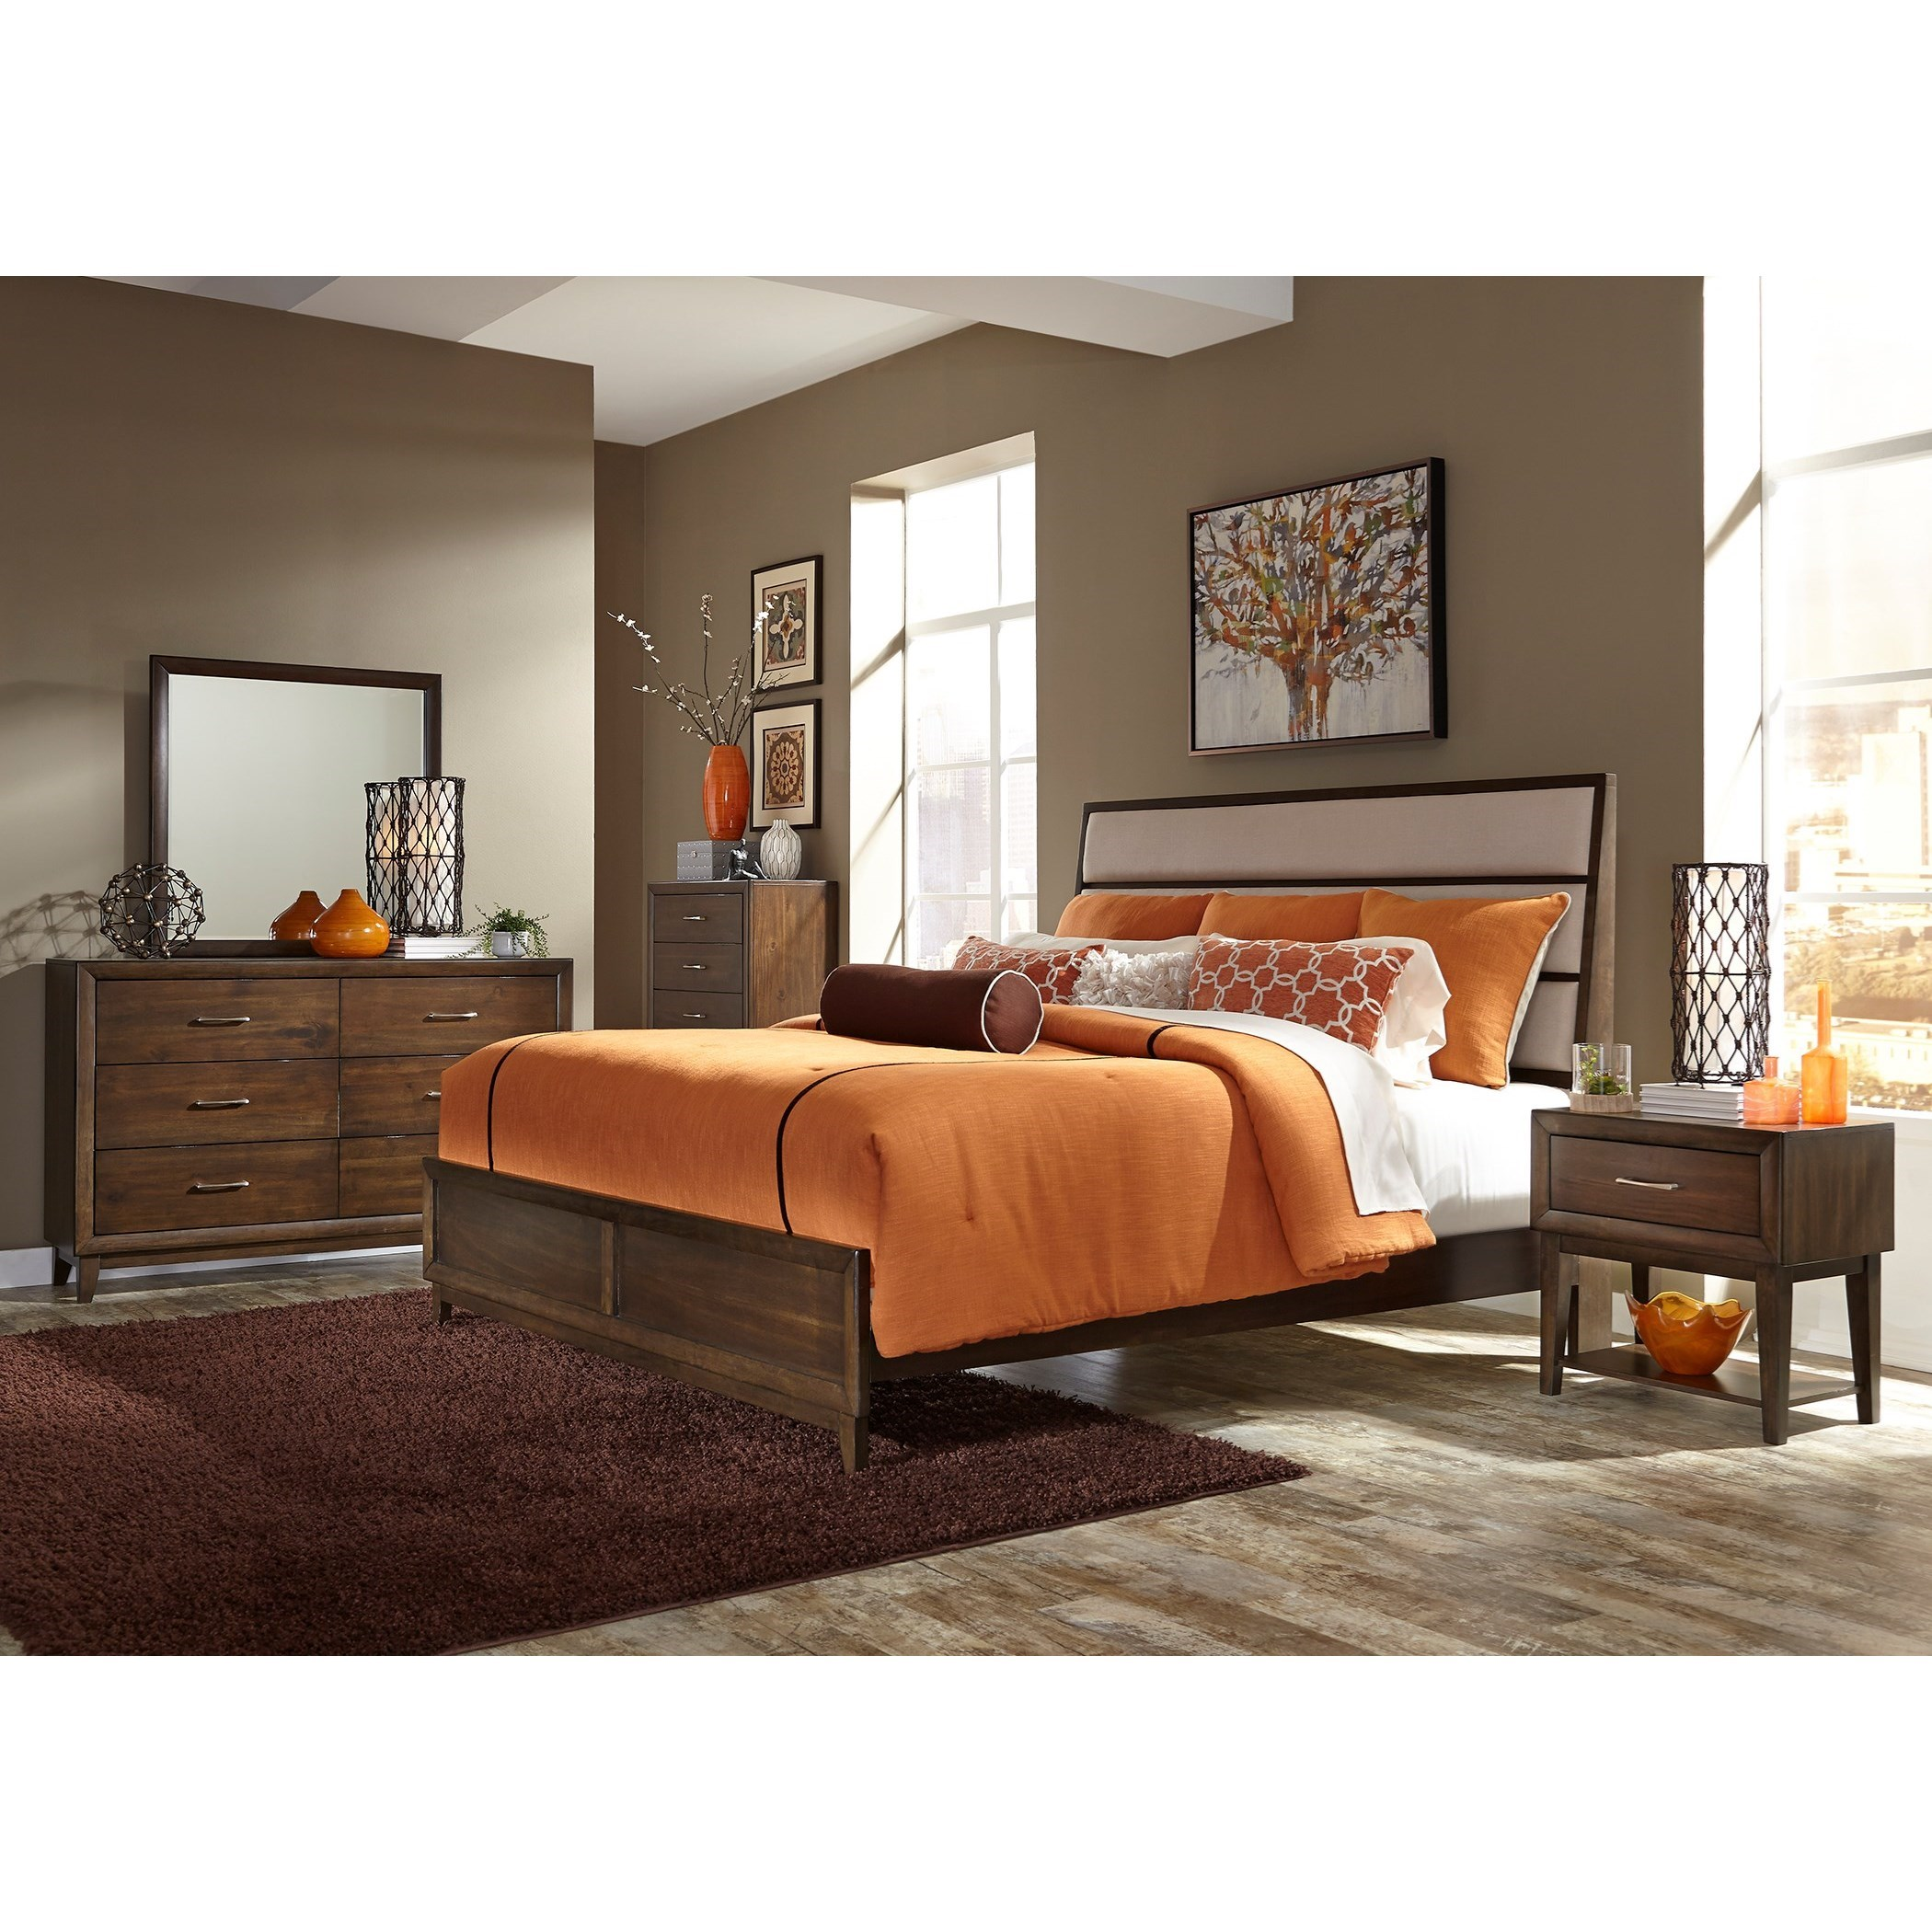 Liberty Furniture Hudson Square Bedroom King Bedroom Group - Item Number: 365-BR-KPBDMCN